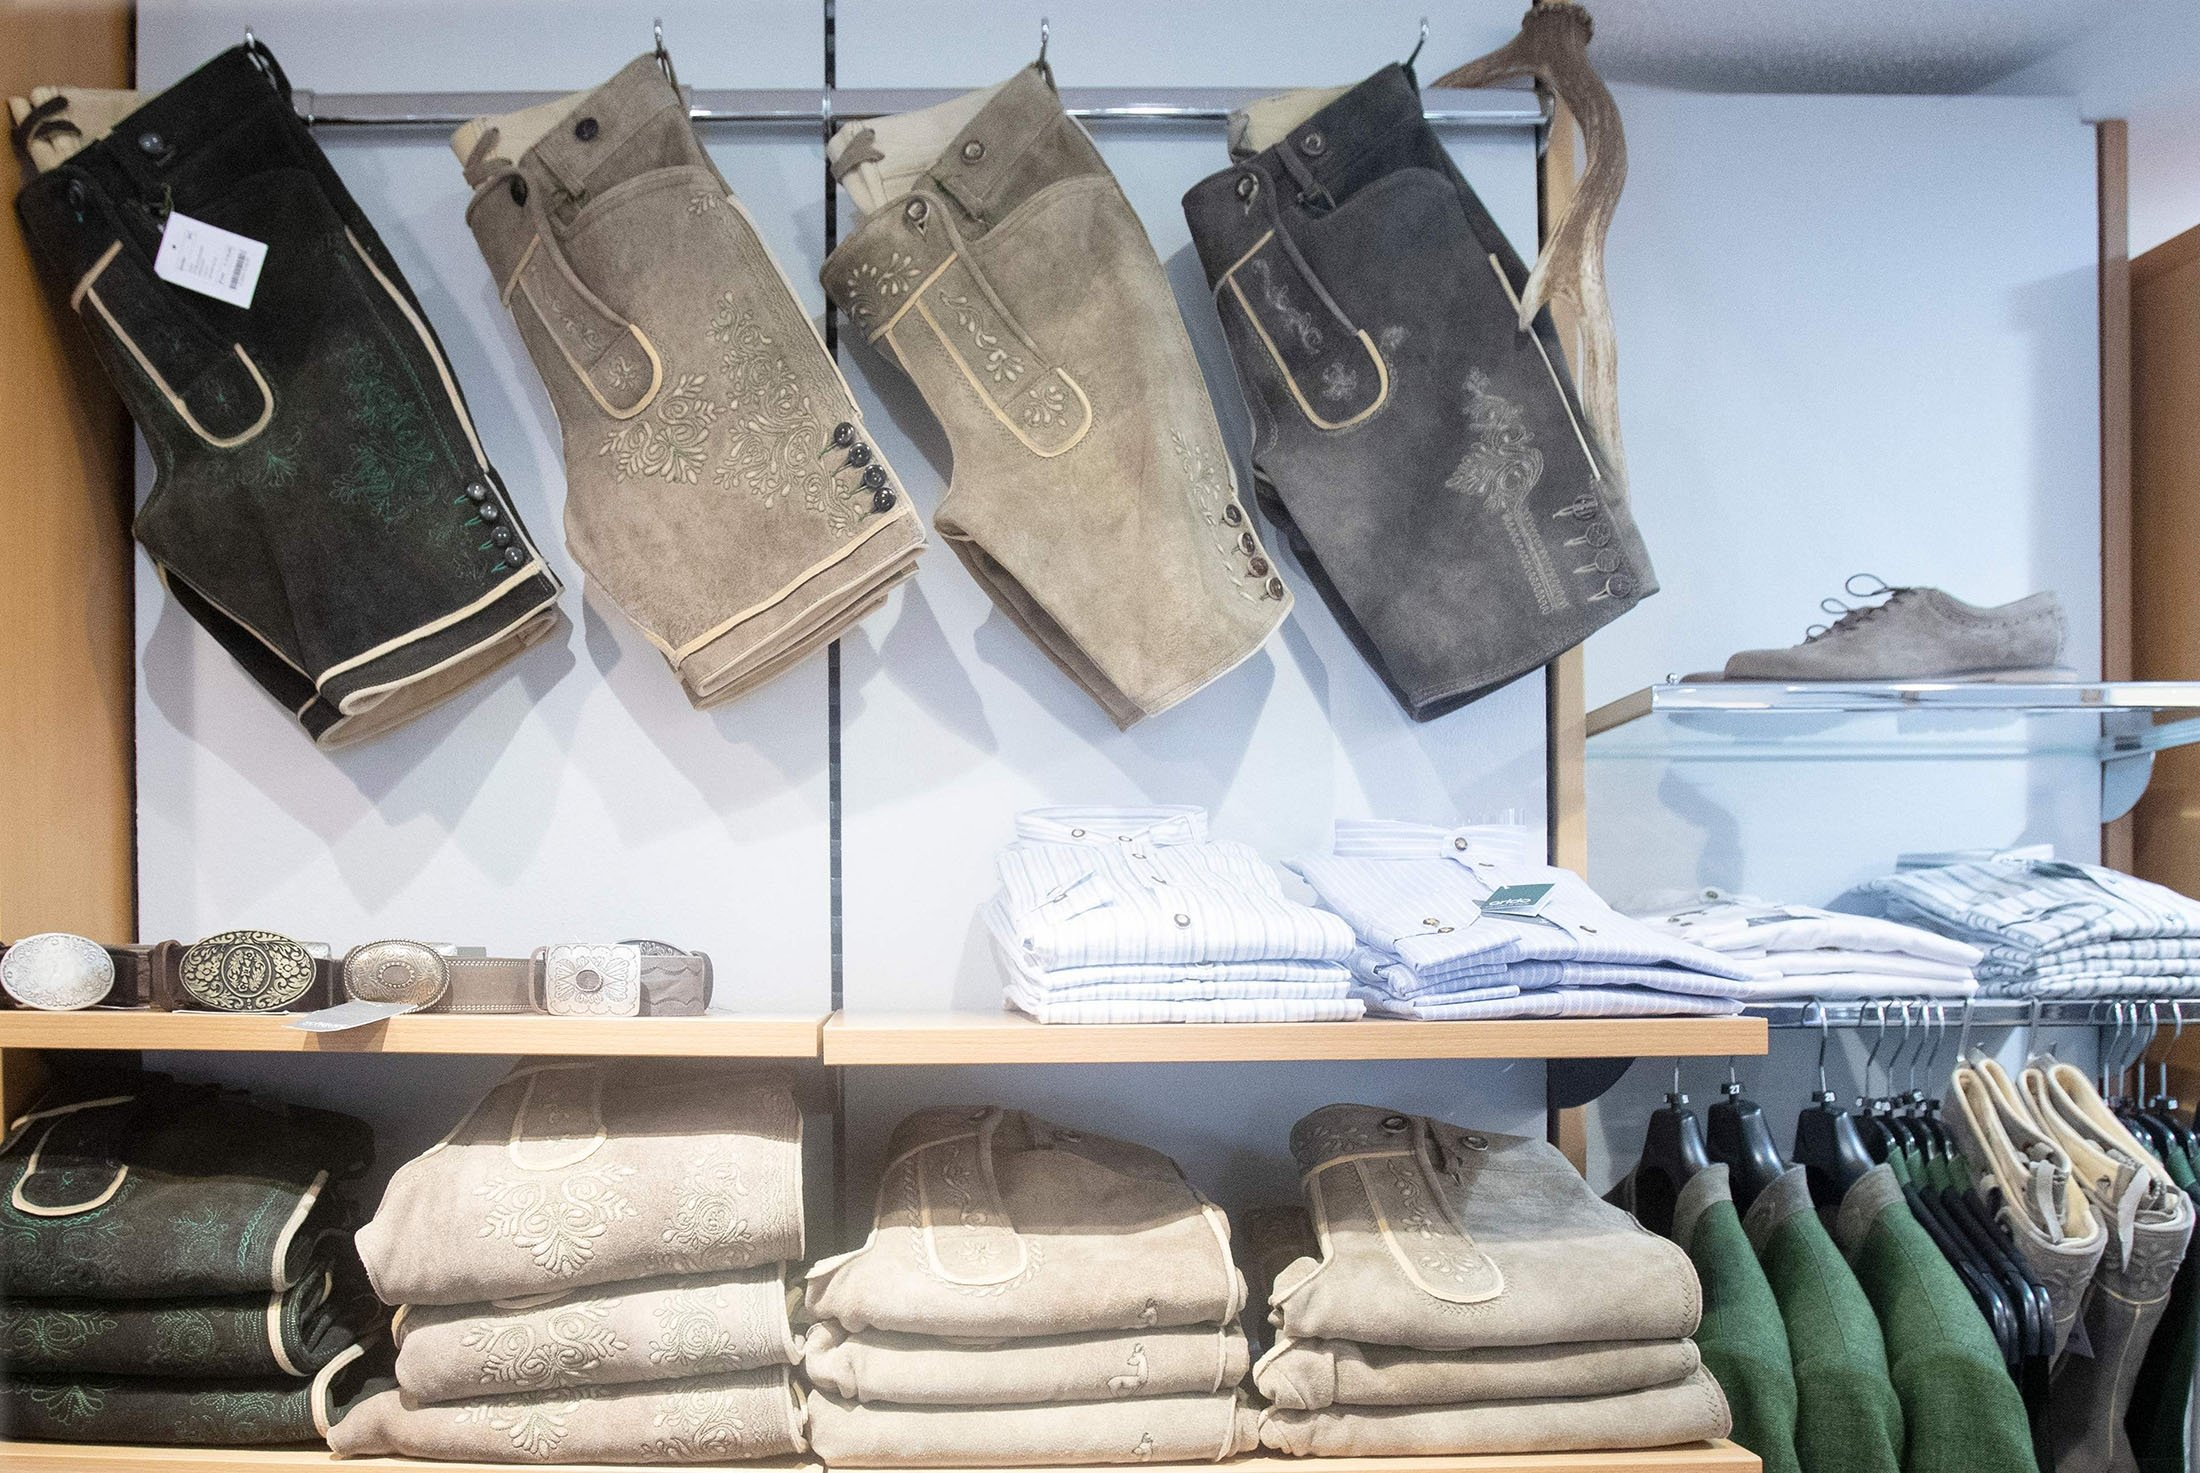 Short lederhosen leather trousers and traditional costumes are on display at the Schauer Atelier dirndl shop in Bad Ischl, Upper Austria, June 24, 2021. (AFP Photo)